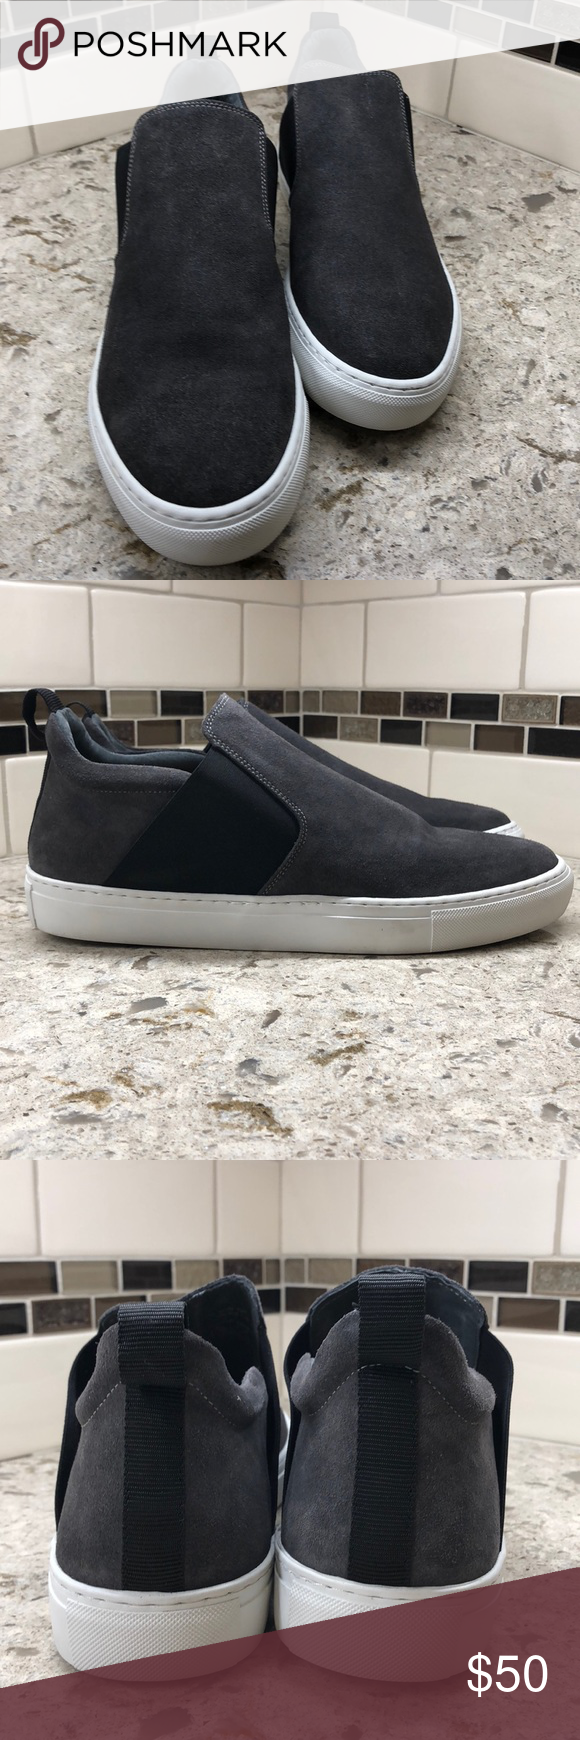 09766b4b640ea Supply Lab Landon slip on sneakers New in box grey suede and black wide  elastic slip On sneakers with white sole Supply Lab Shoes Loafers & Slip-Ons